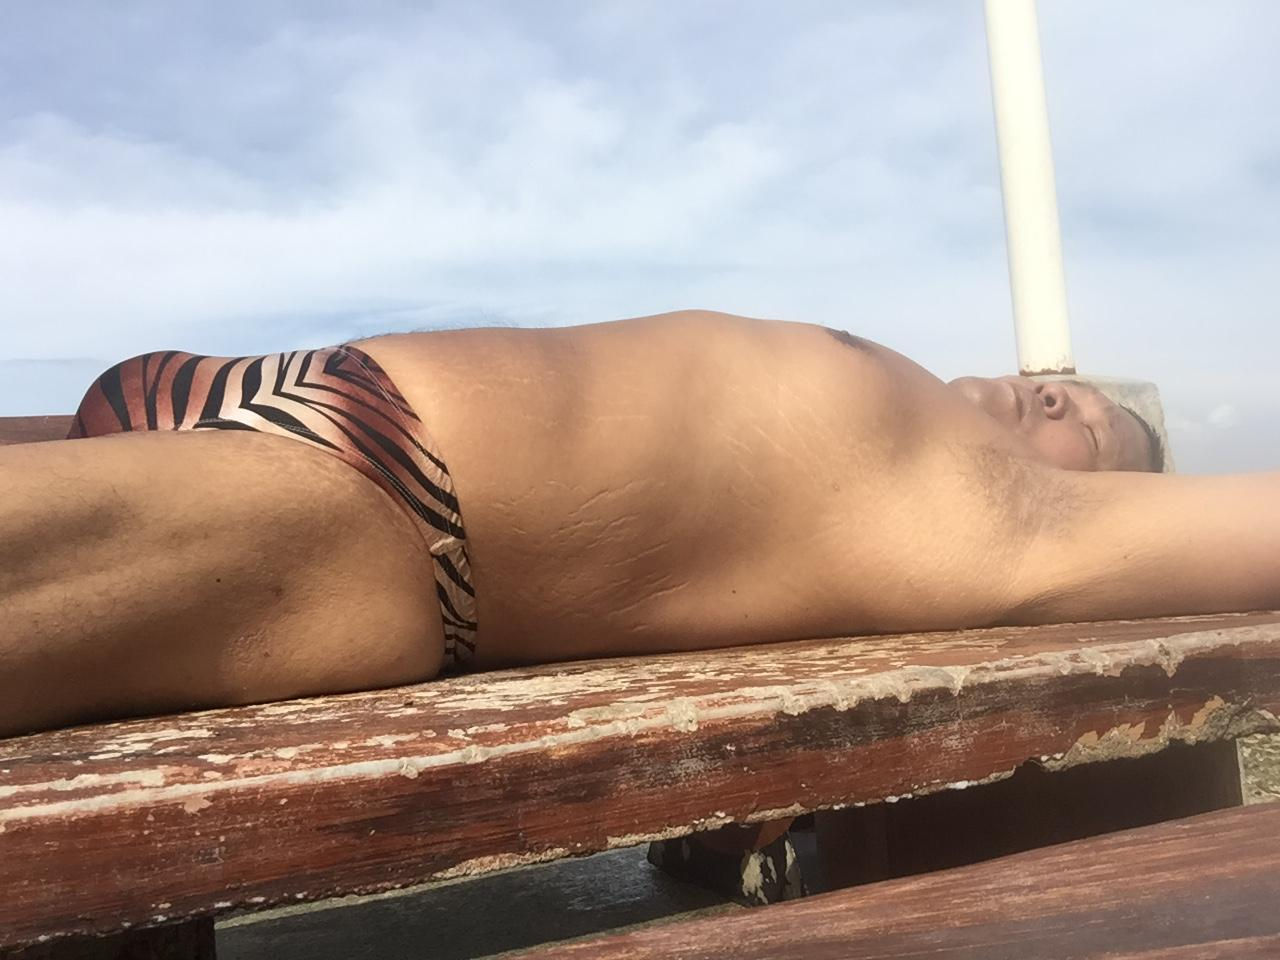 Bikini sun bather (119/218)